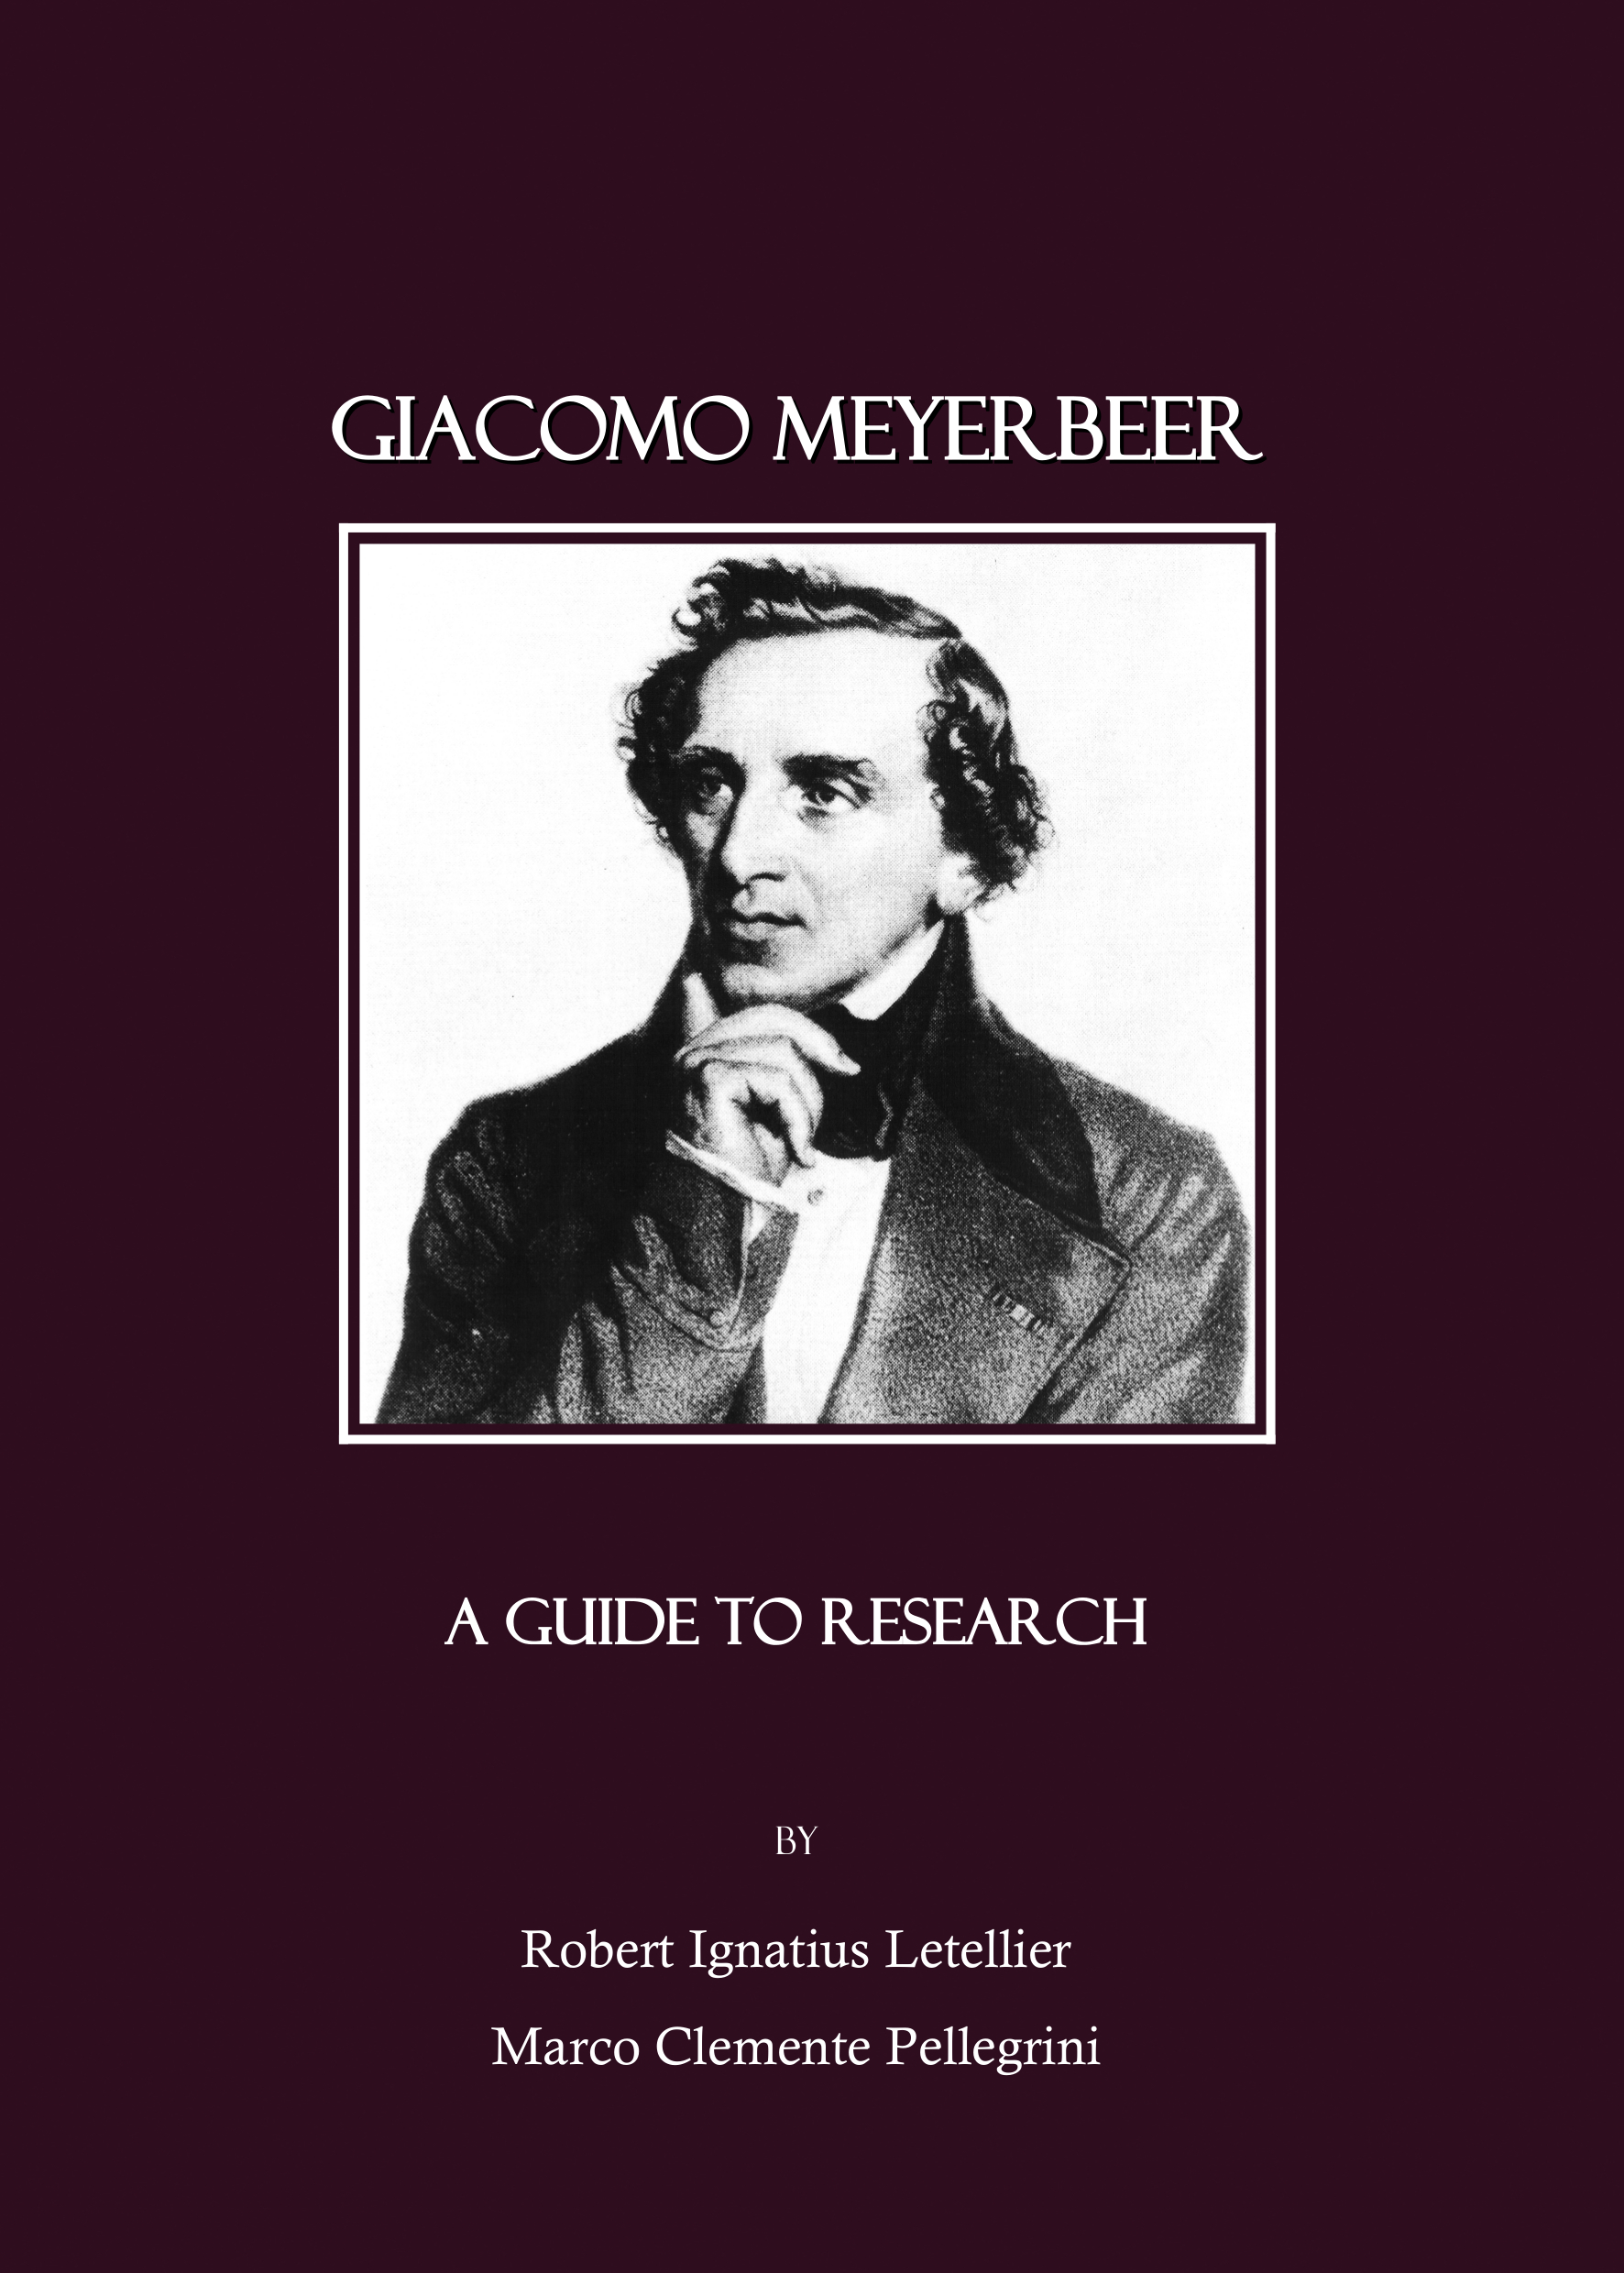 Giacomo Meyerbeer: A Guide to Research